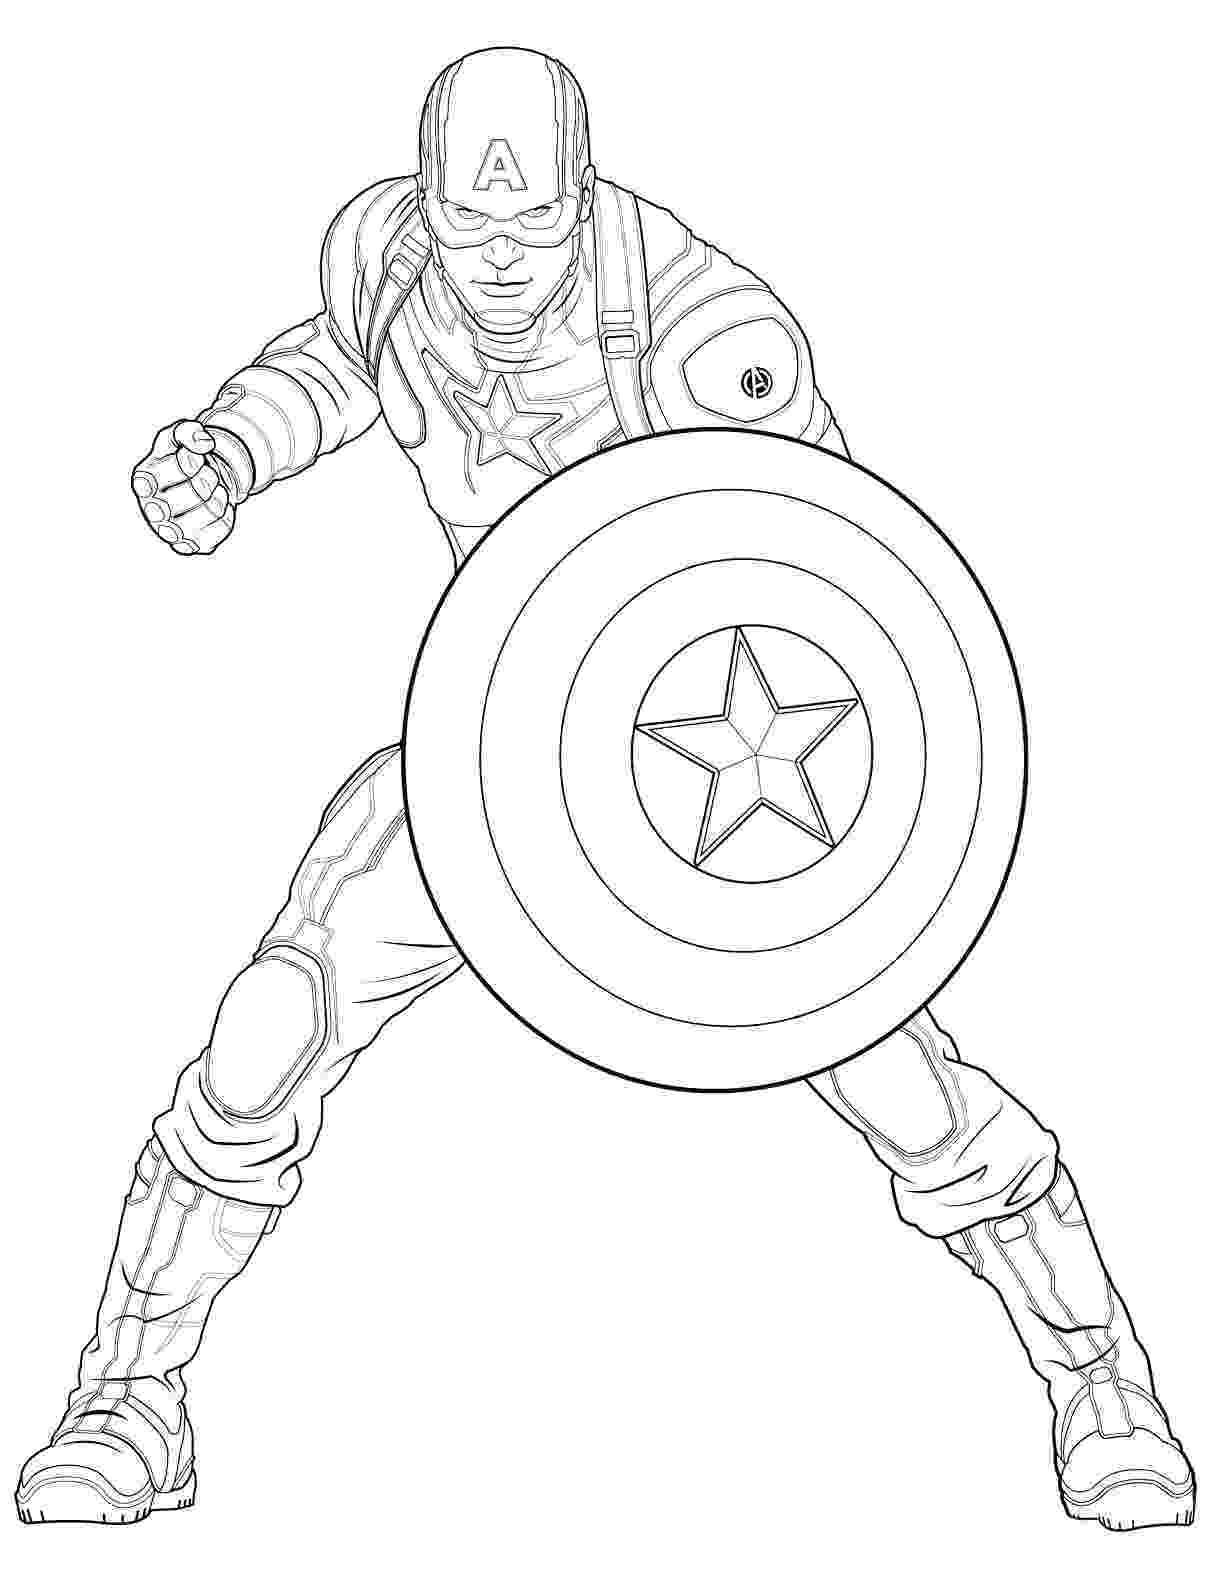 captain america colouring pages free printable captain america coloring pages for kids colouring pages america captain